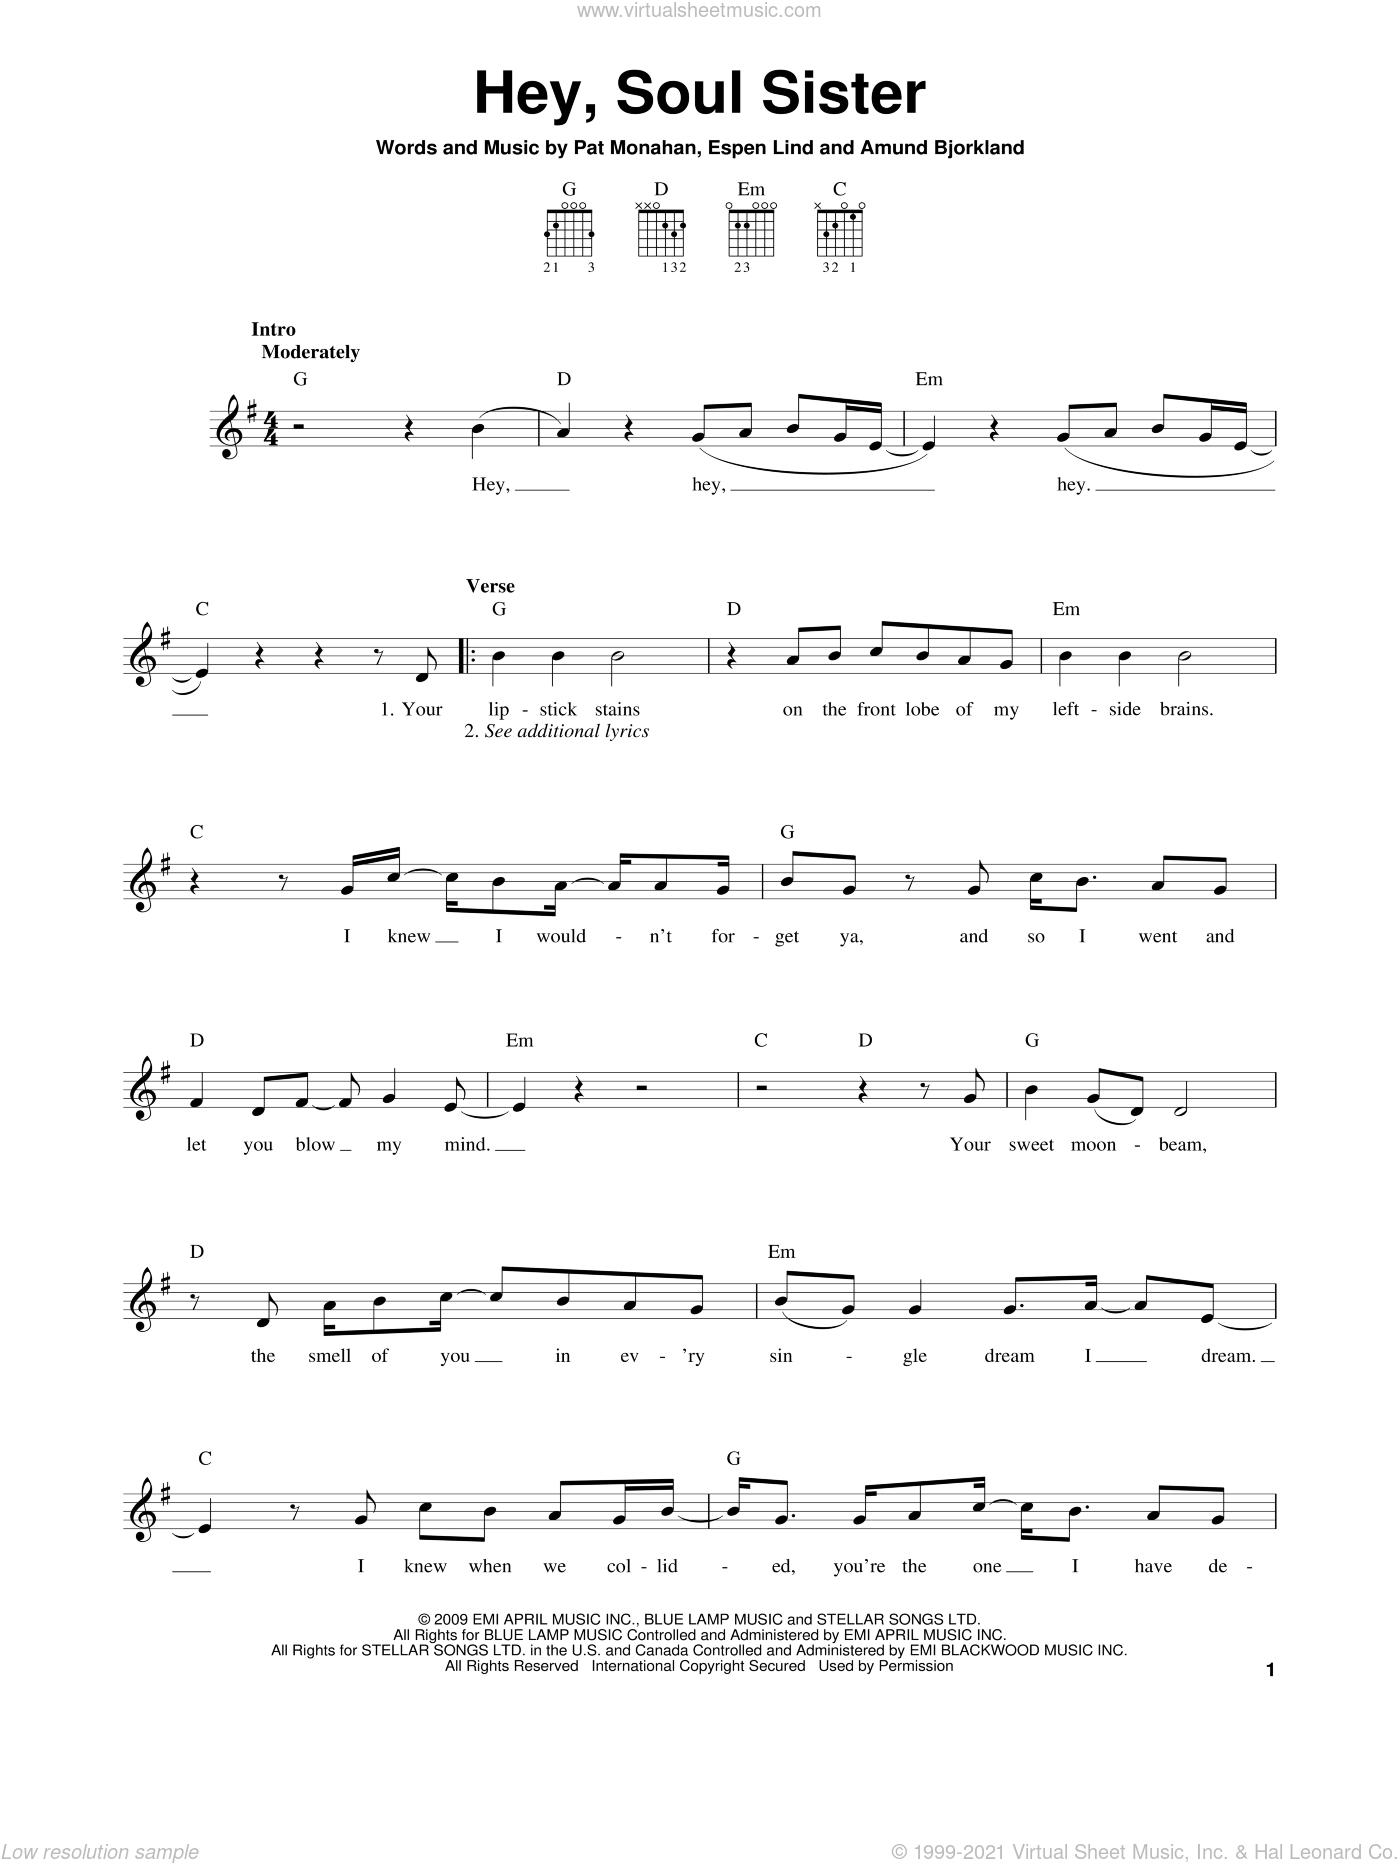 Hey, Soul Sister sheet music for guitar solo (chords) by Train, Amund Bjorklund, Espen Lind and Pat Monahan, easy guitar (chords)